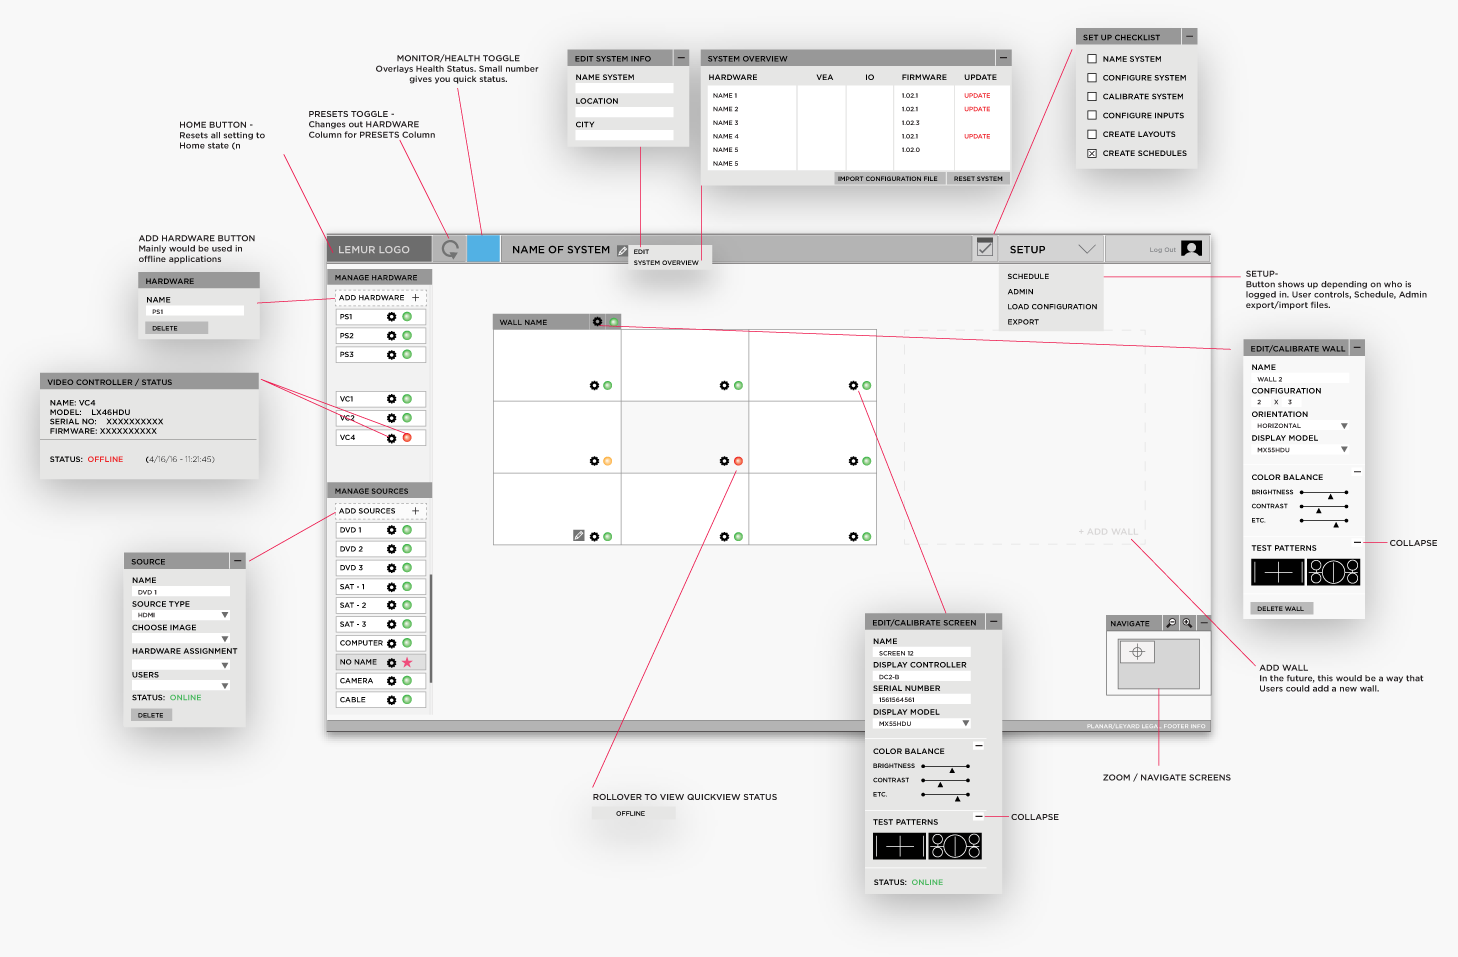 incubate-leyard-planar-wall-director-web-application-wireframe